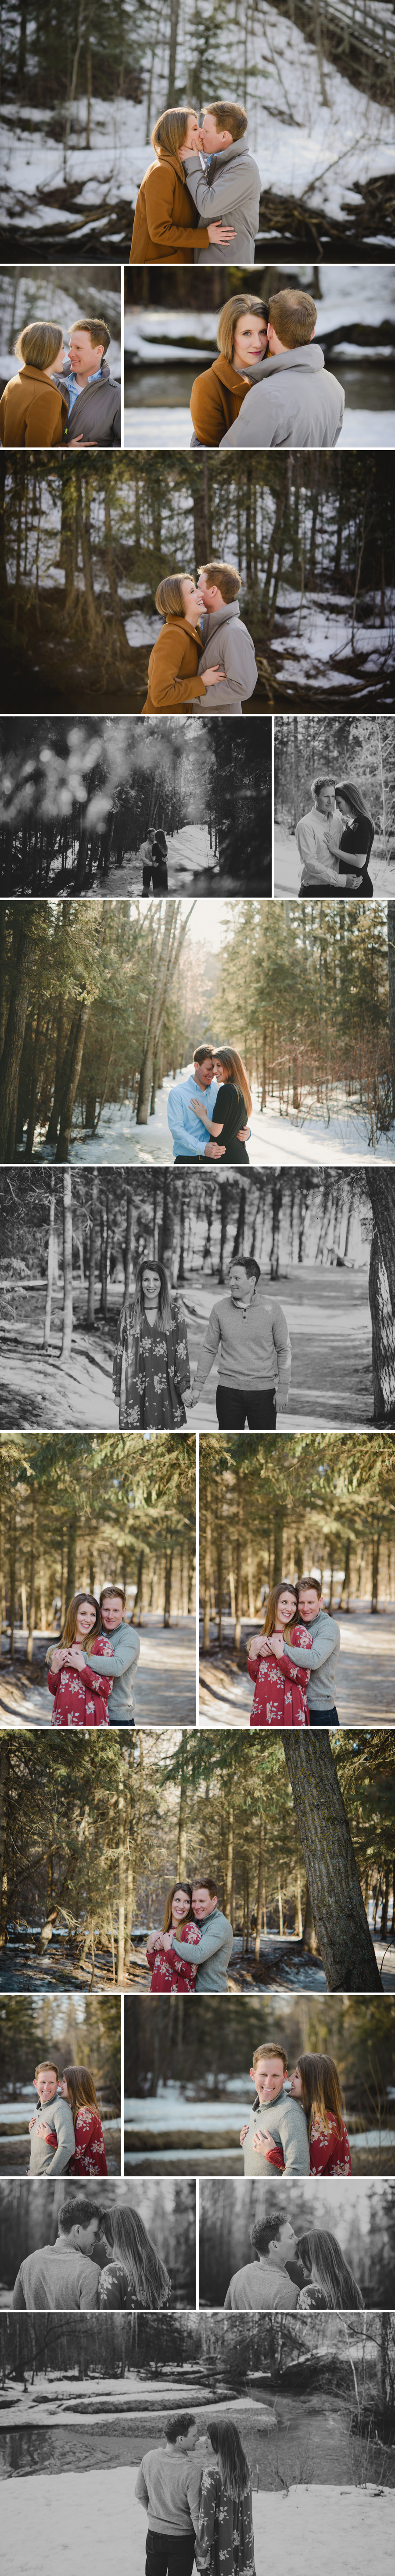 yeg_blog_2017_edmonton_engagement_session_bbcollective_katelynandkyle_blog